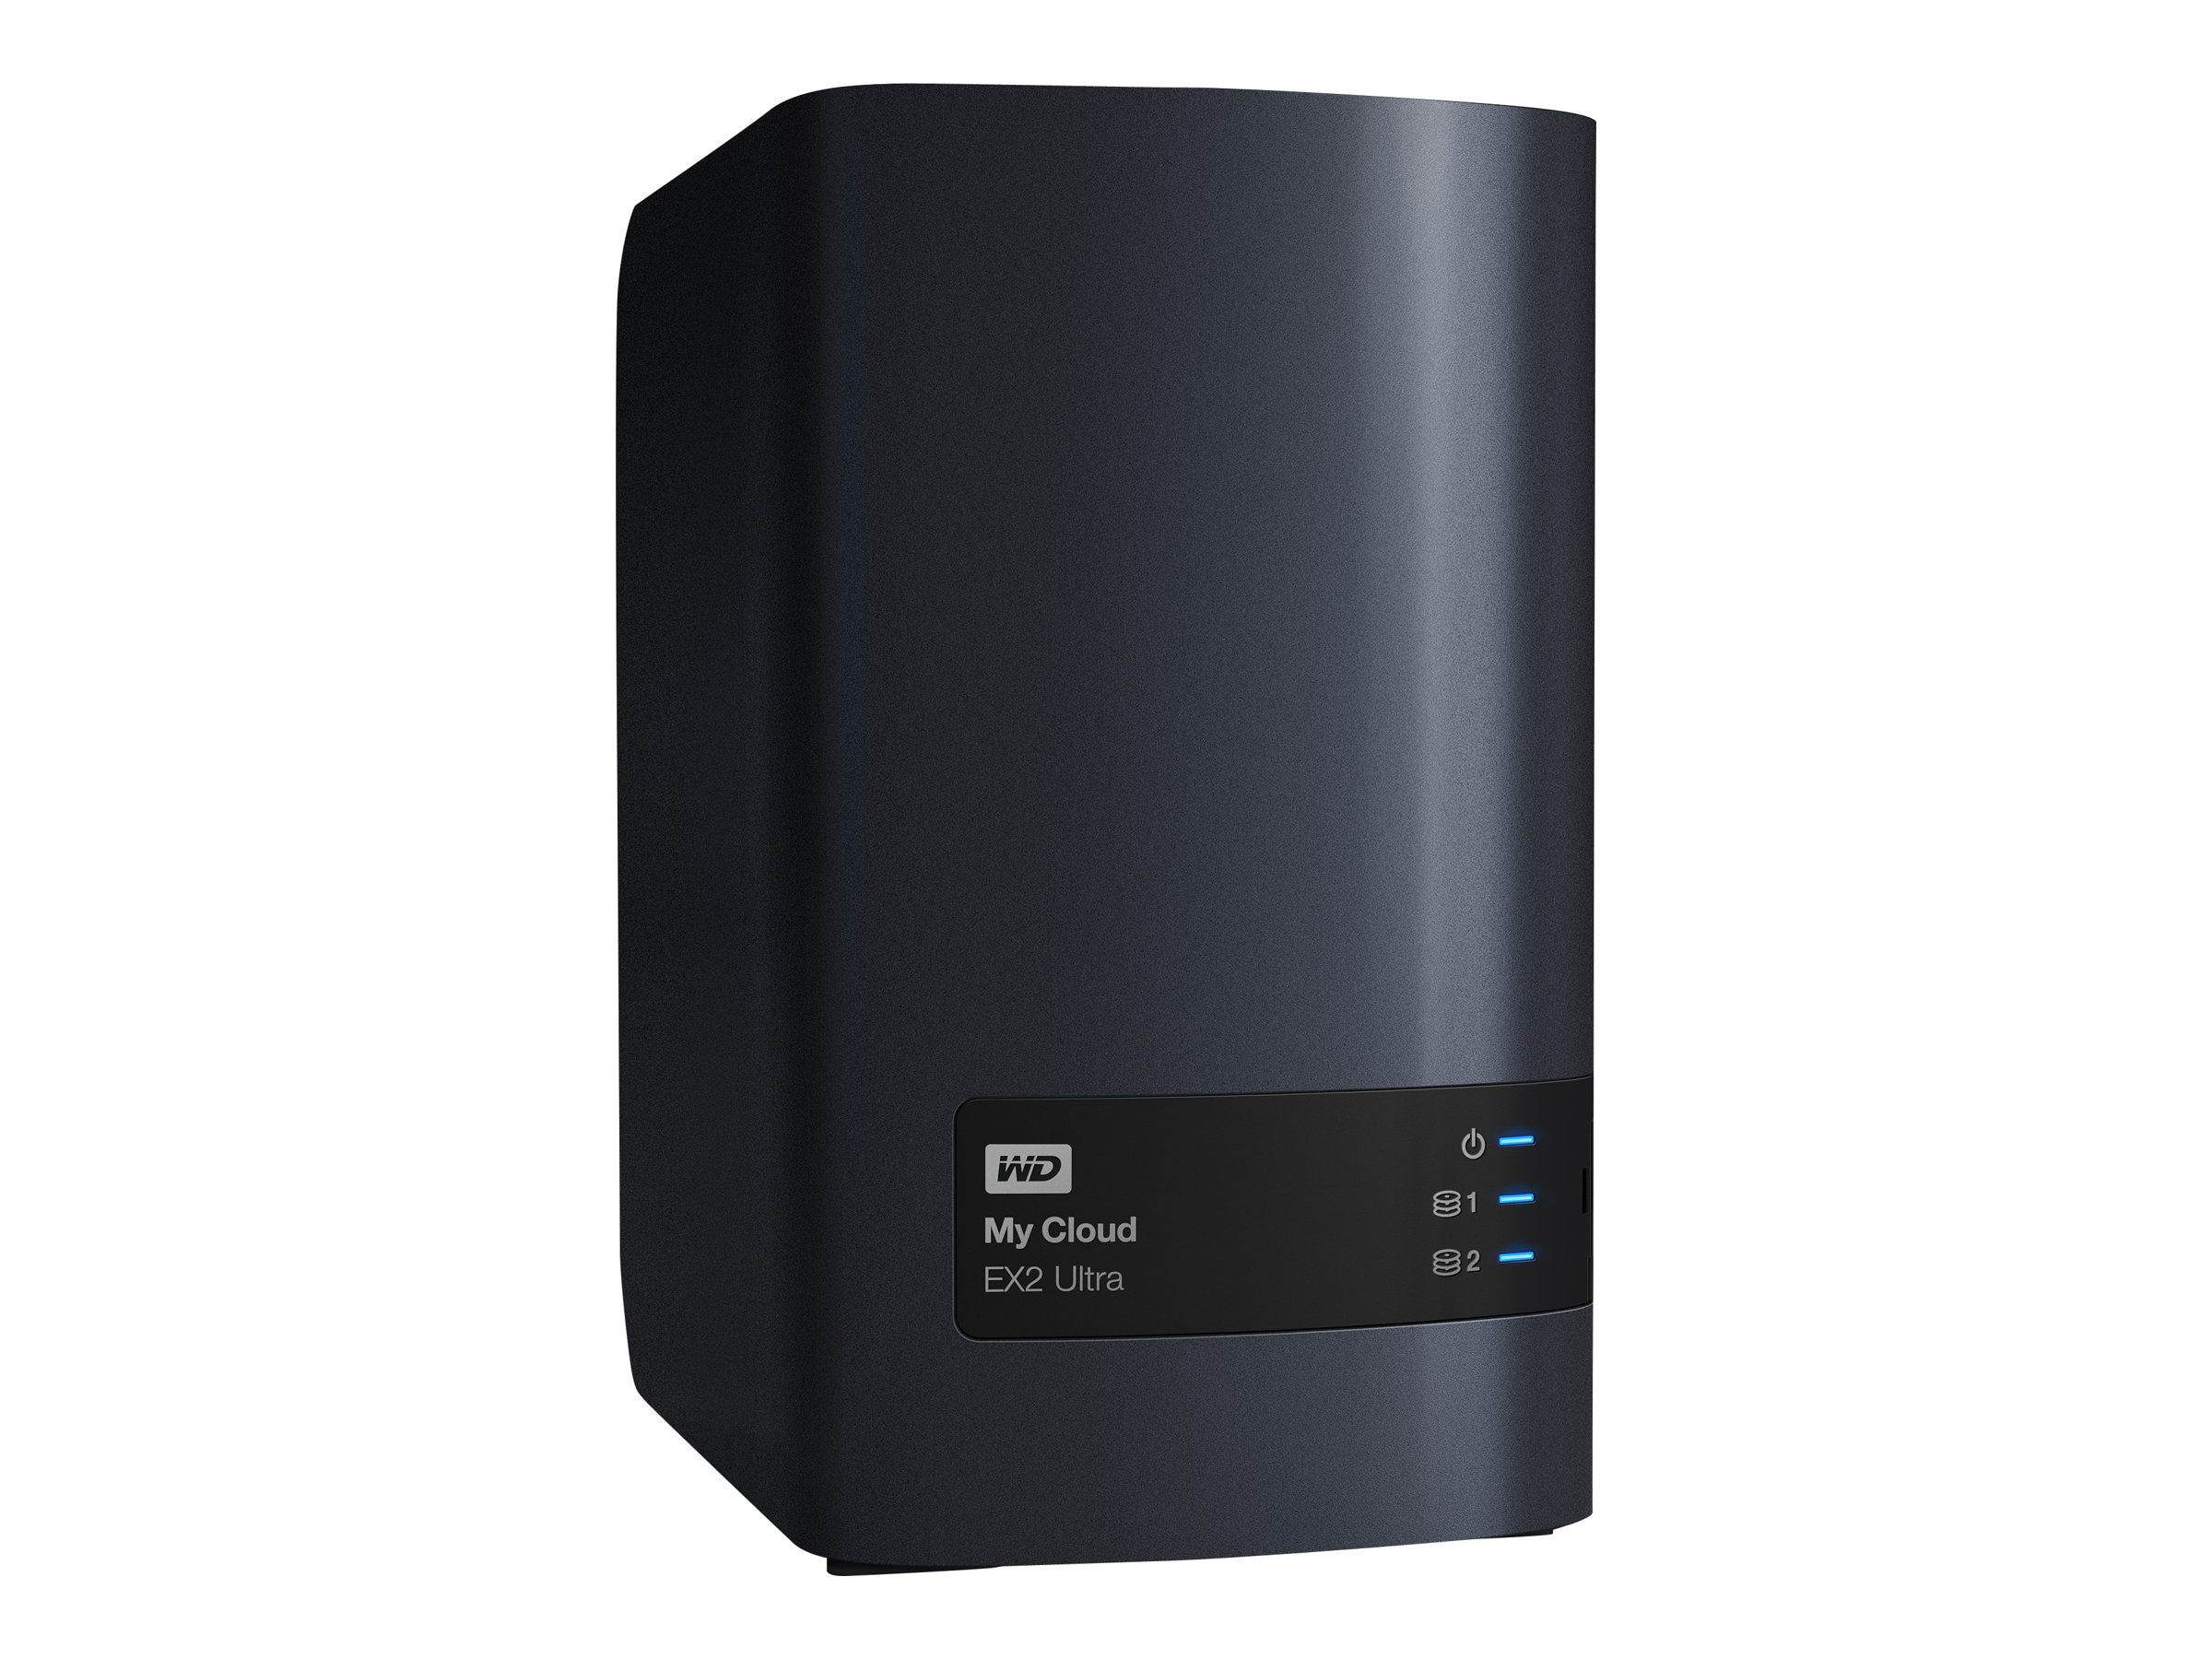 WD 12TB WD My Cloud EX2 Ultra Private Cloud NAS Storage, WDBVBZ0120JCH-NESN